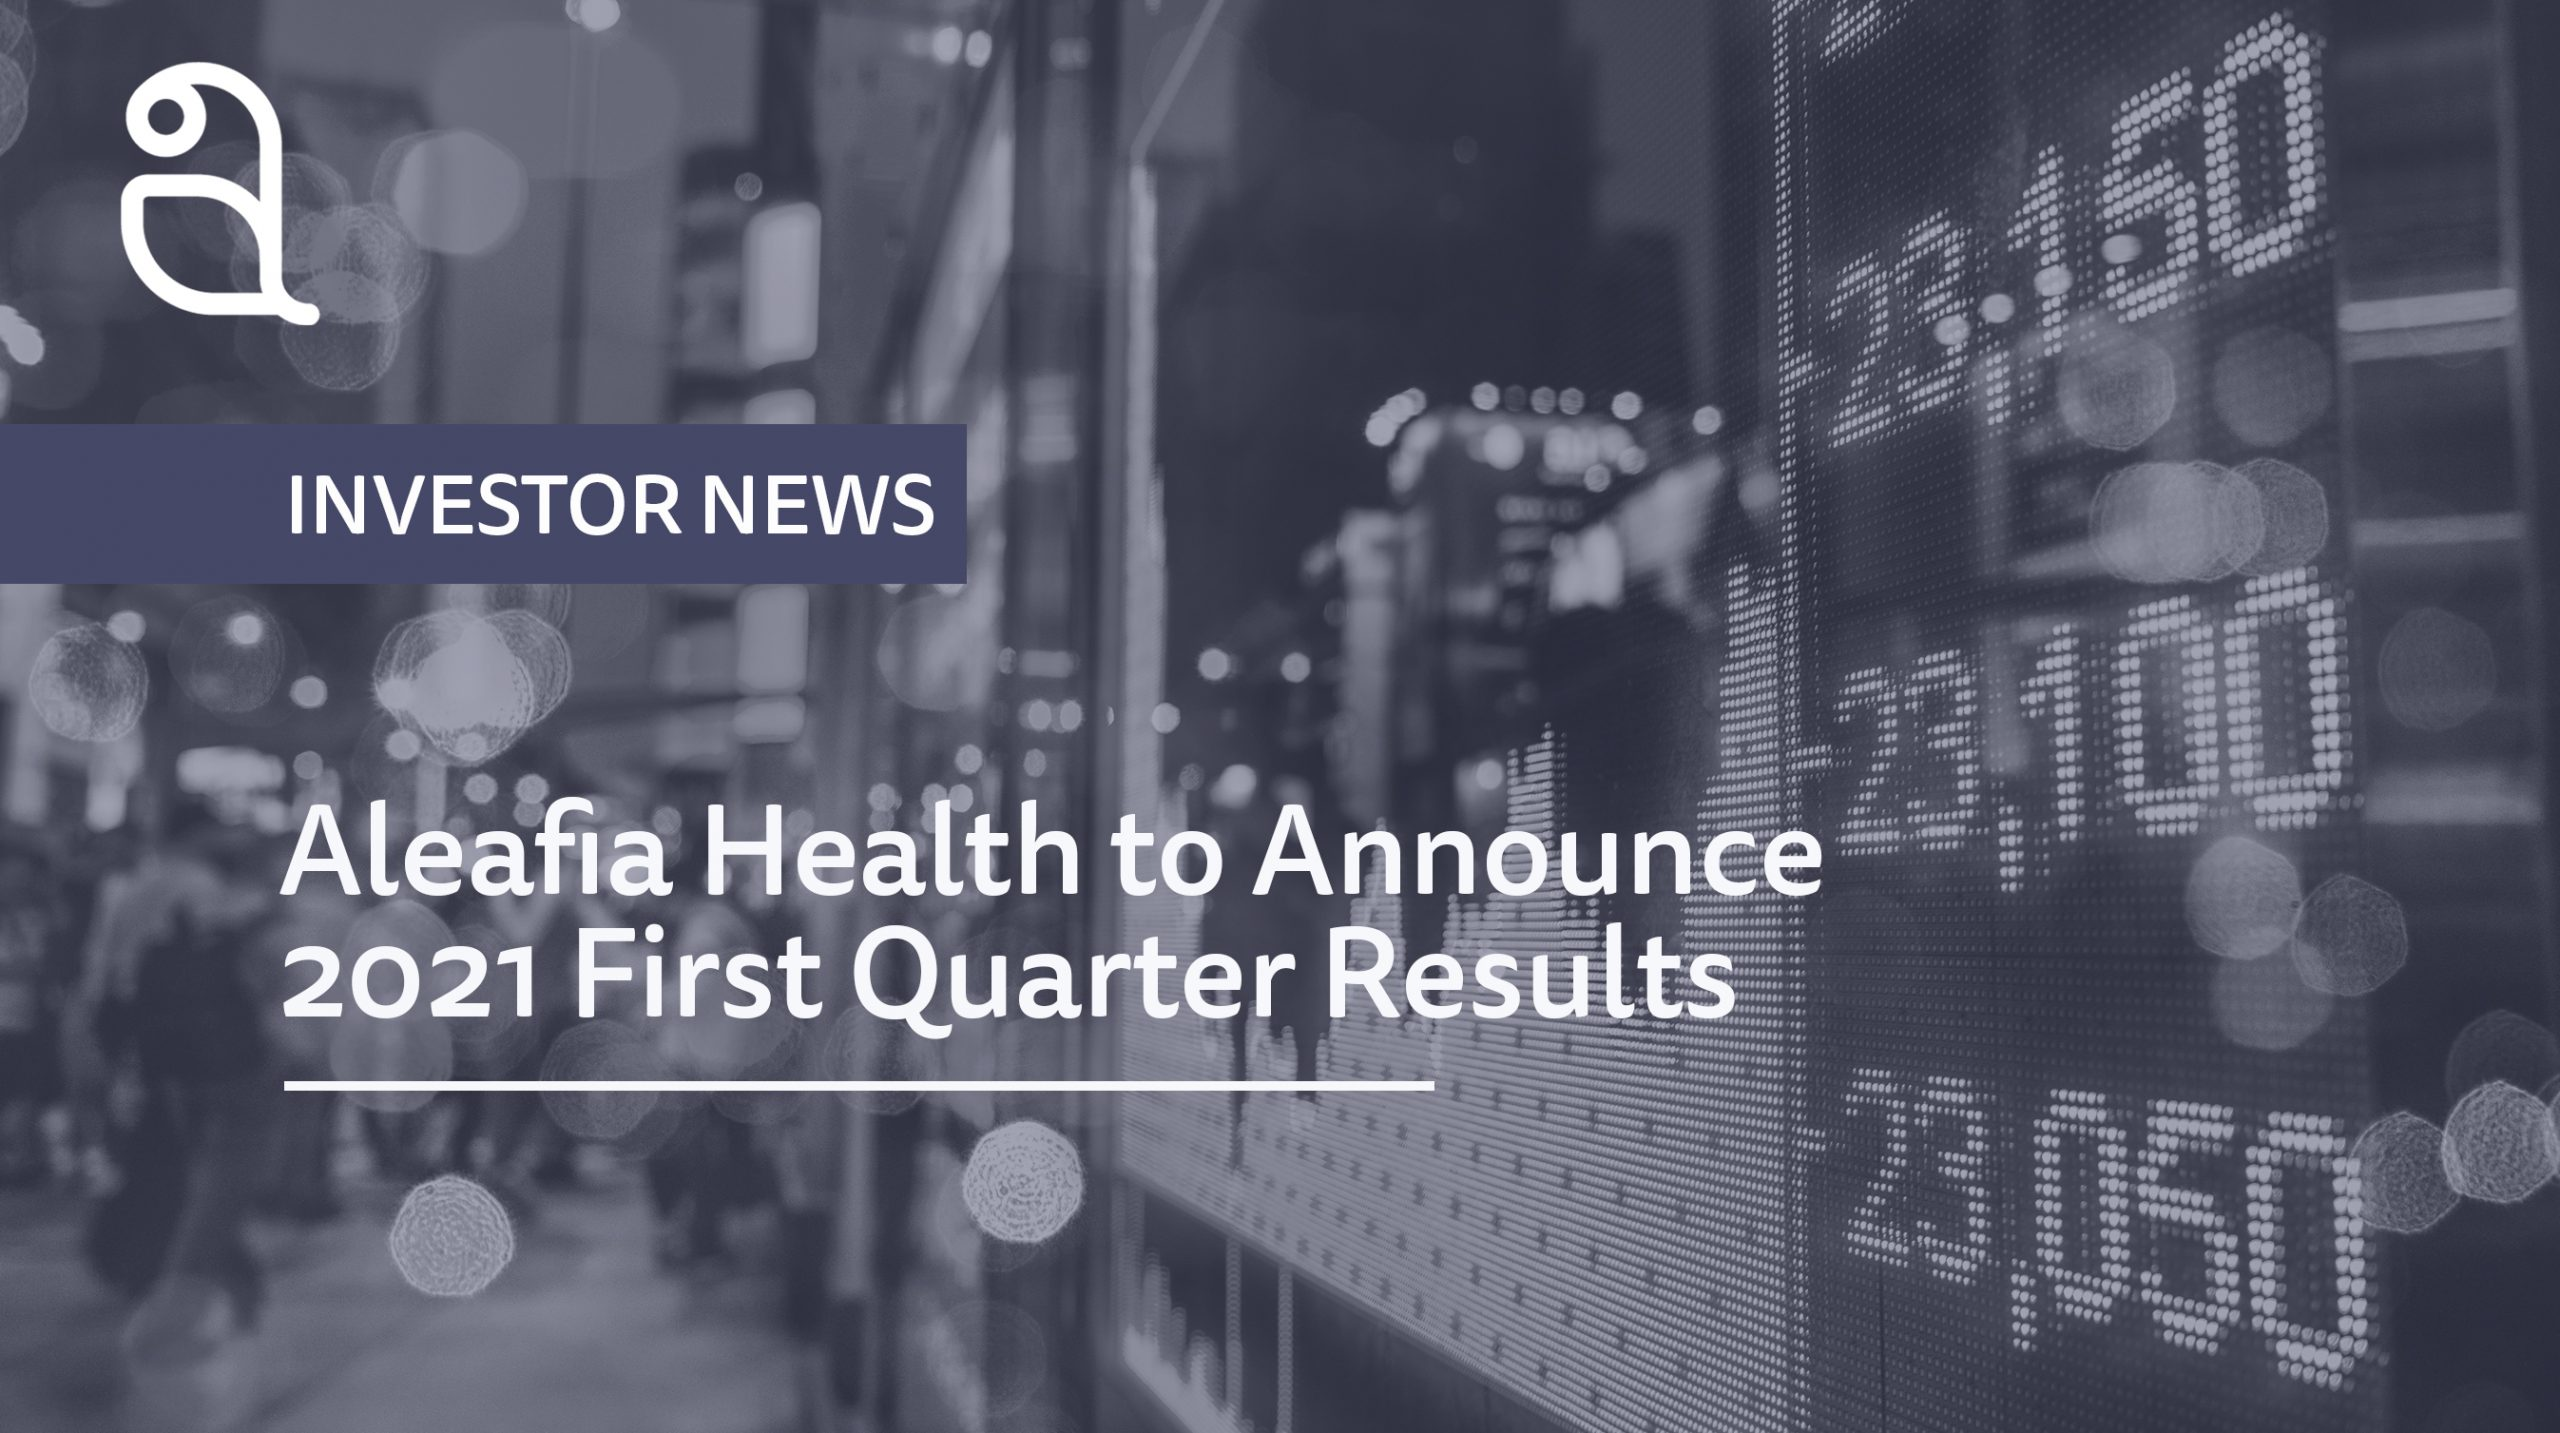 Aleafia Health to Announce 2021 First Quarter Results